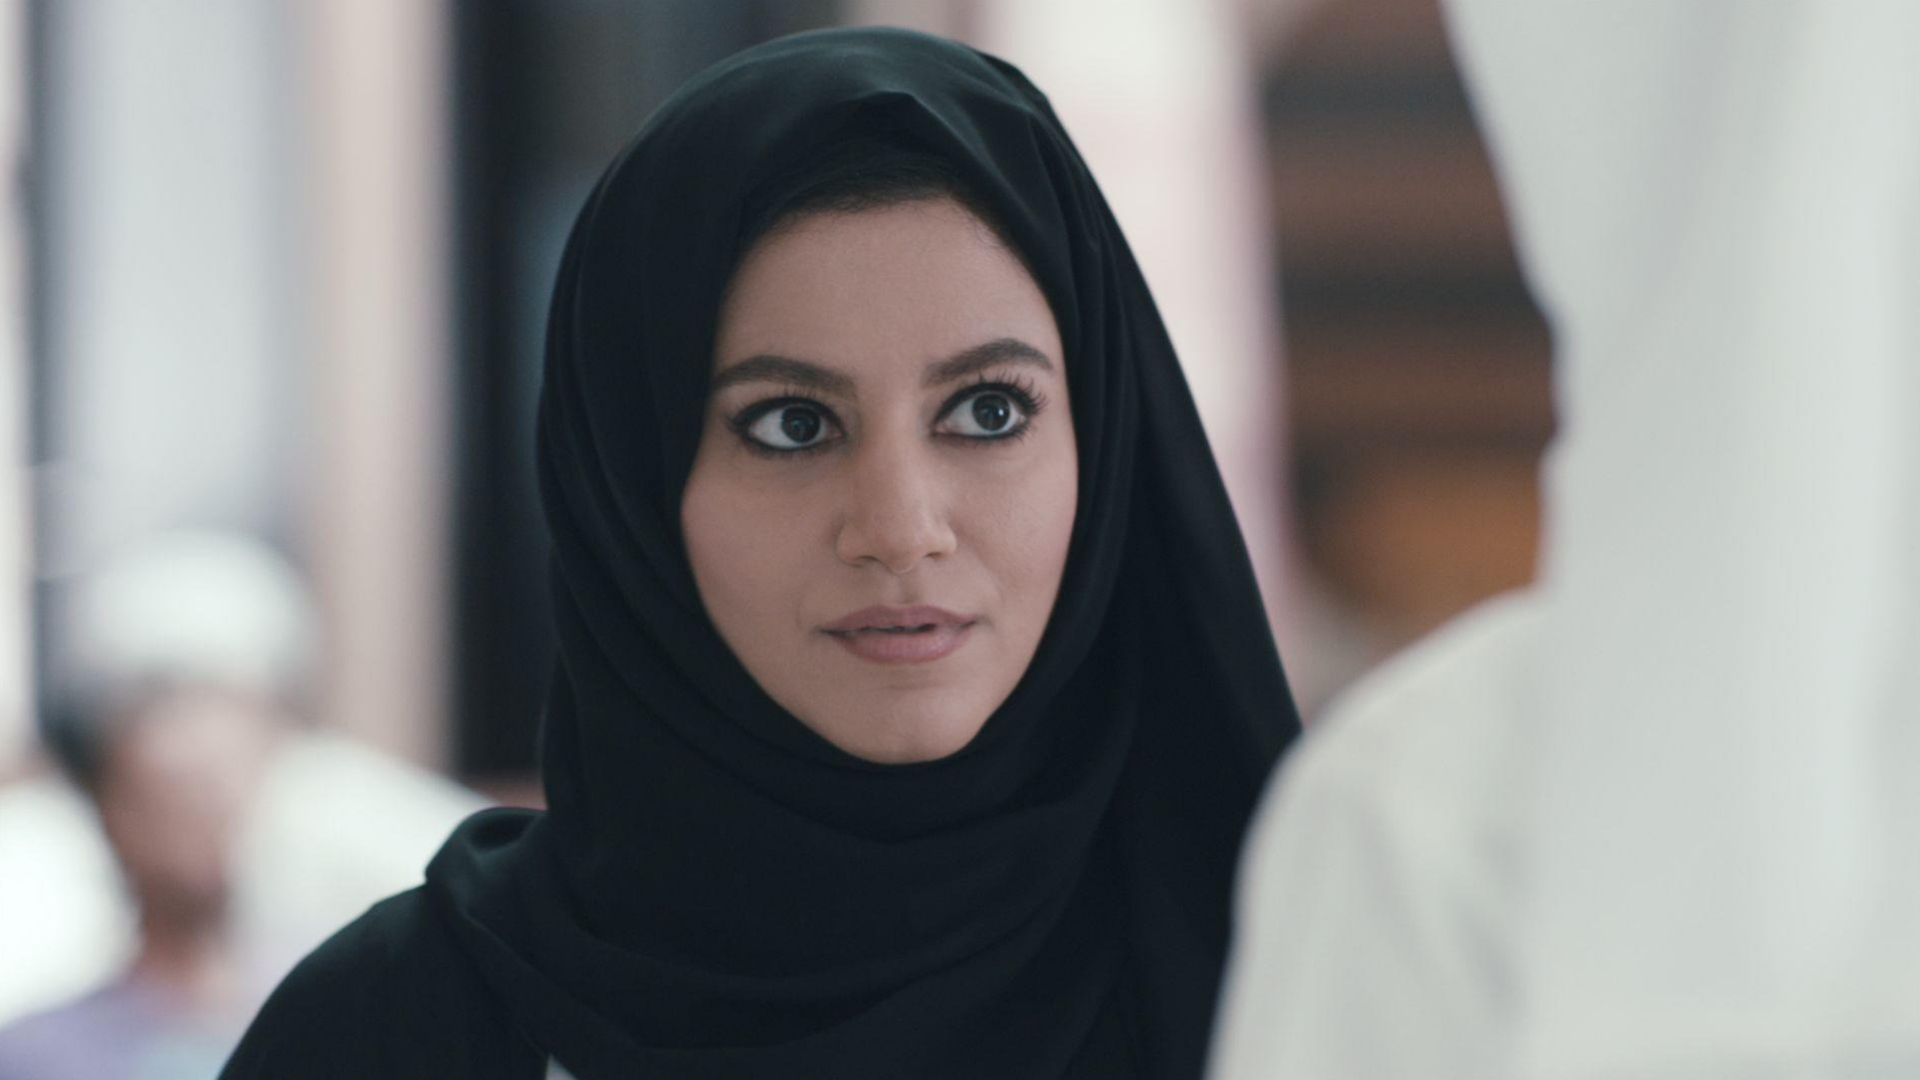 Netflix's New TV Drama Is Set In Abu Dhabi And Features A Strong, Ambitious Emirati Women As The Lead